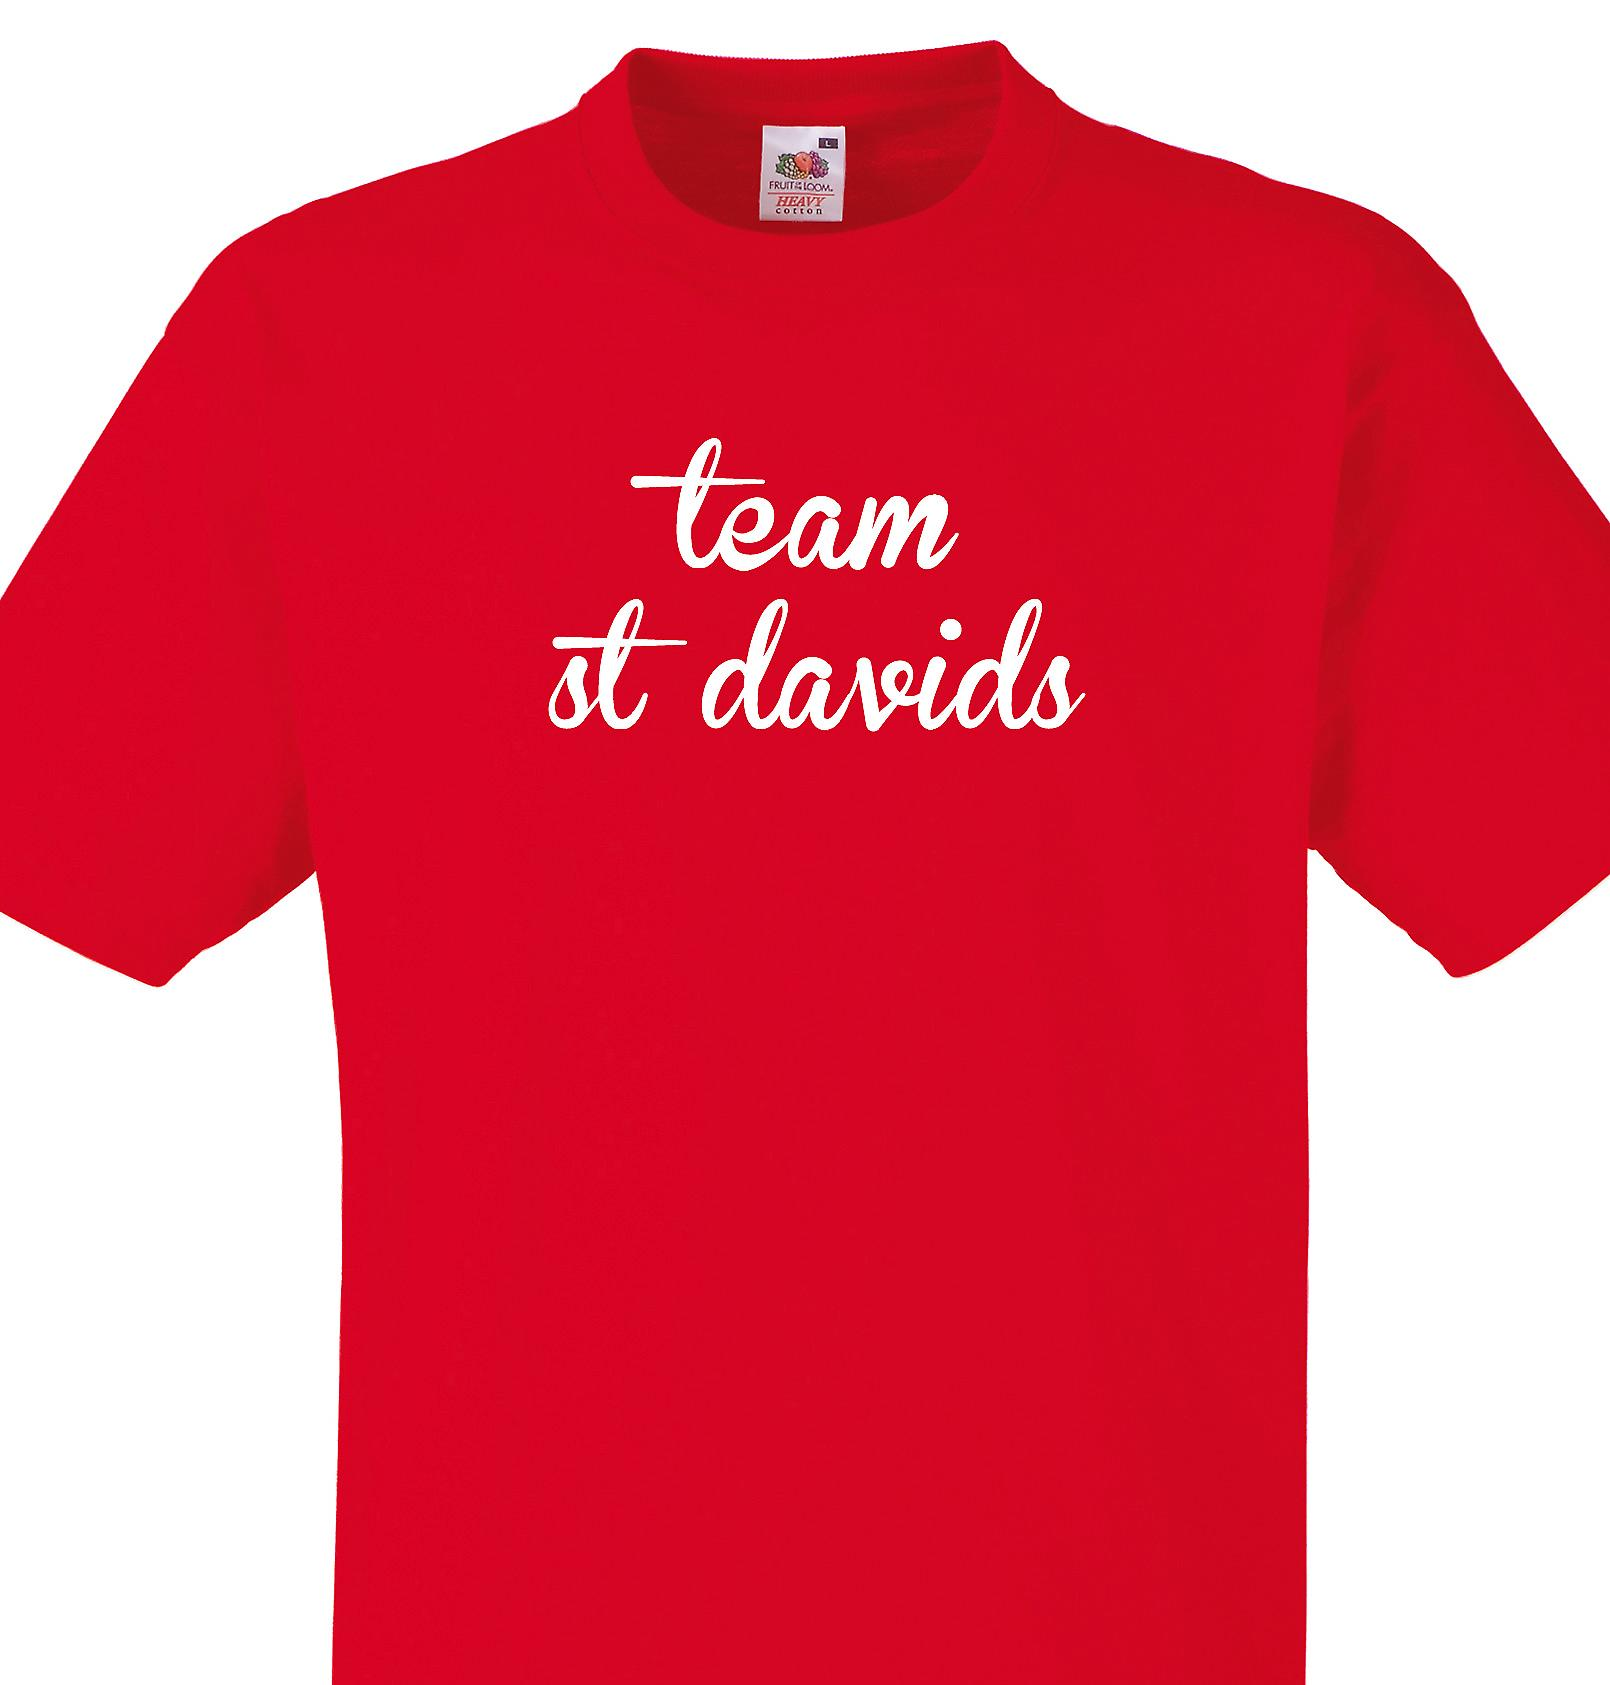 Team St davids Red T shirt